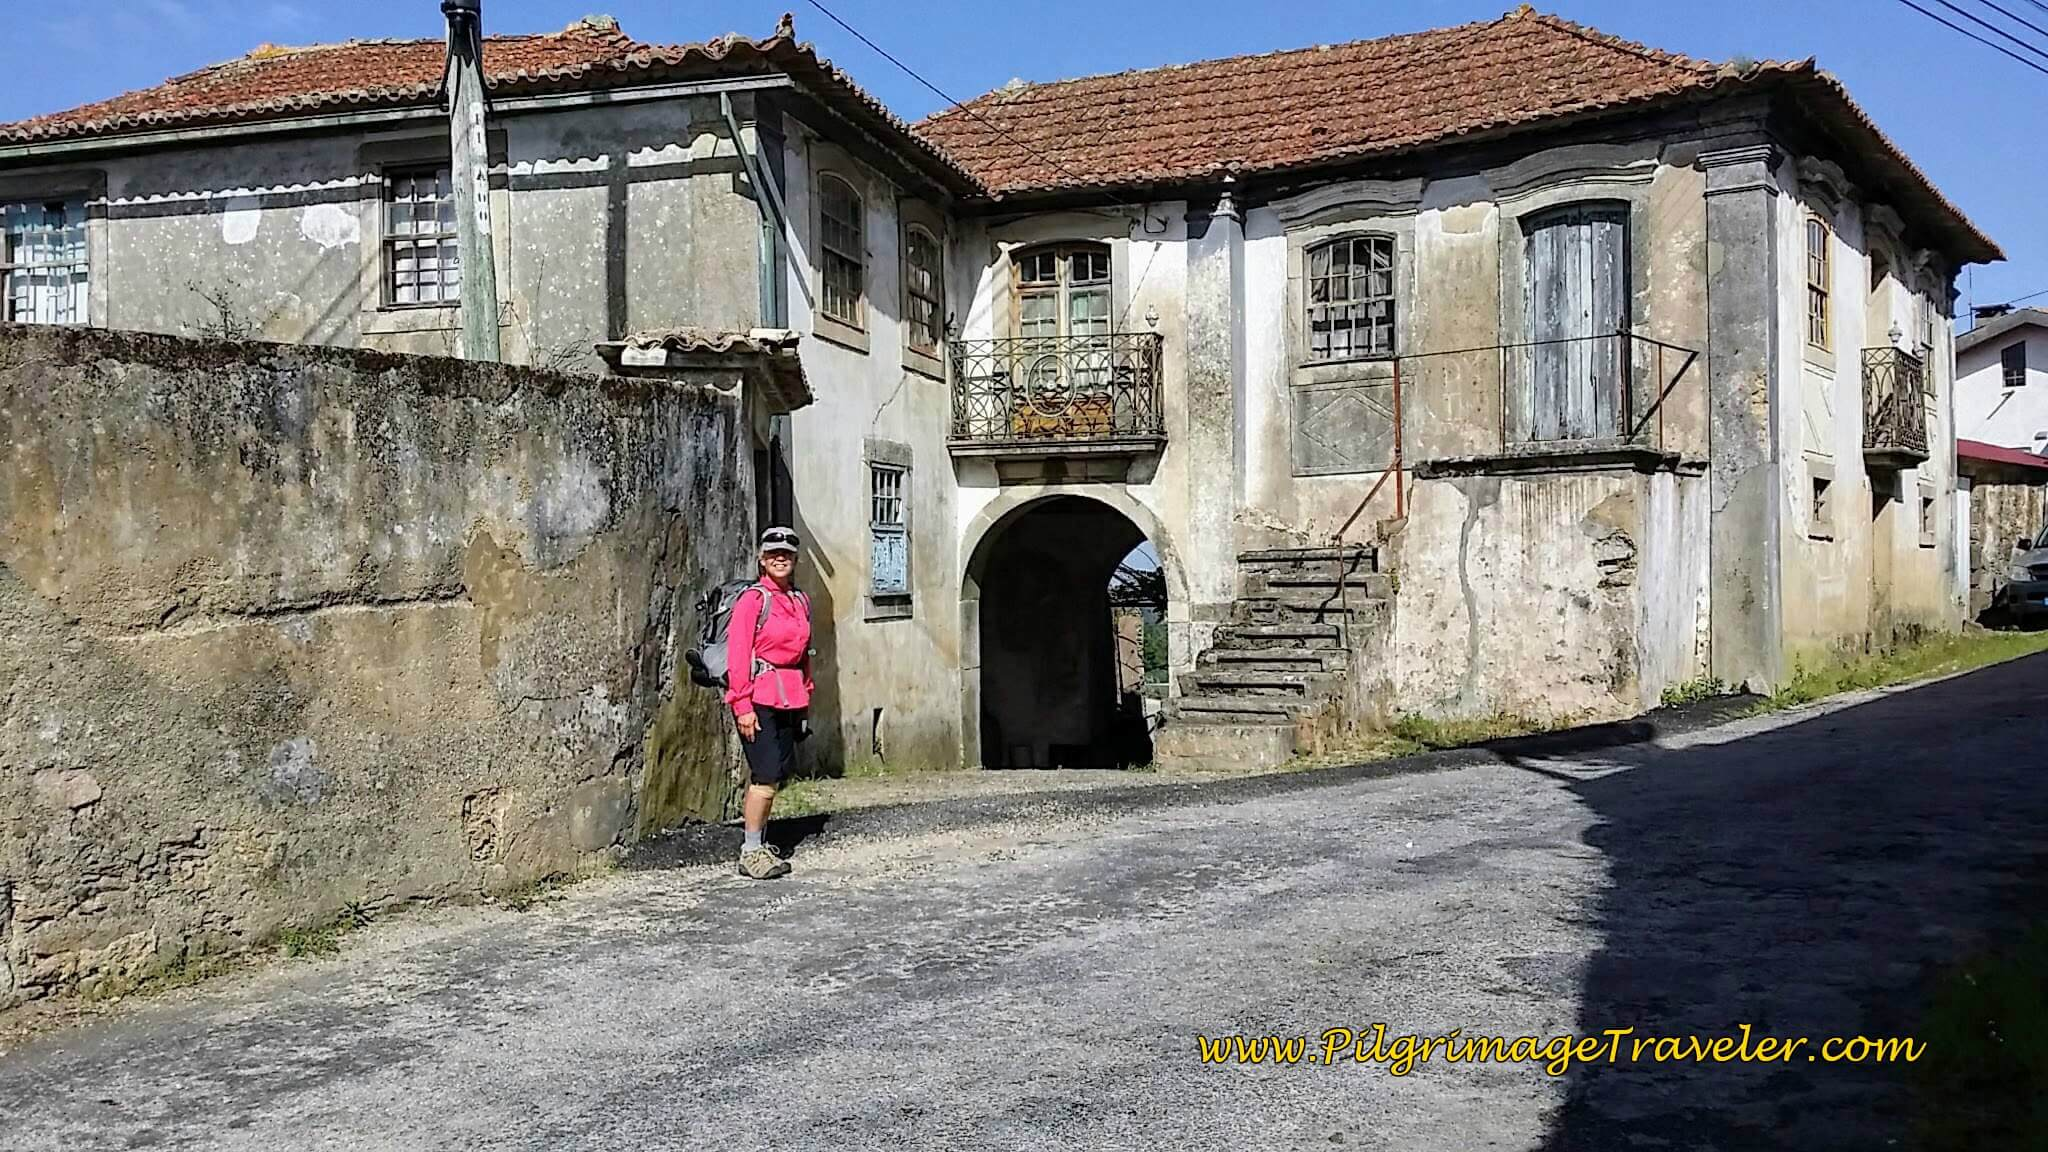 Another Intriguing Old Building in Bemposta on day thirteen of the Camino Portugués